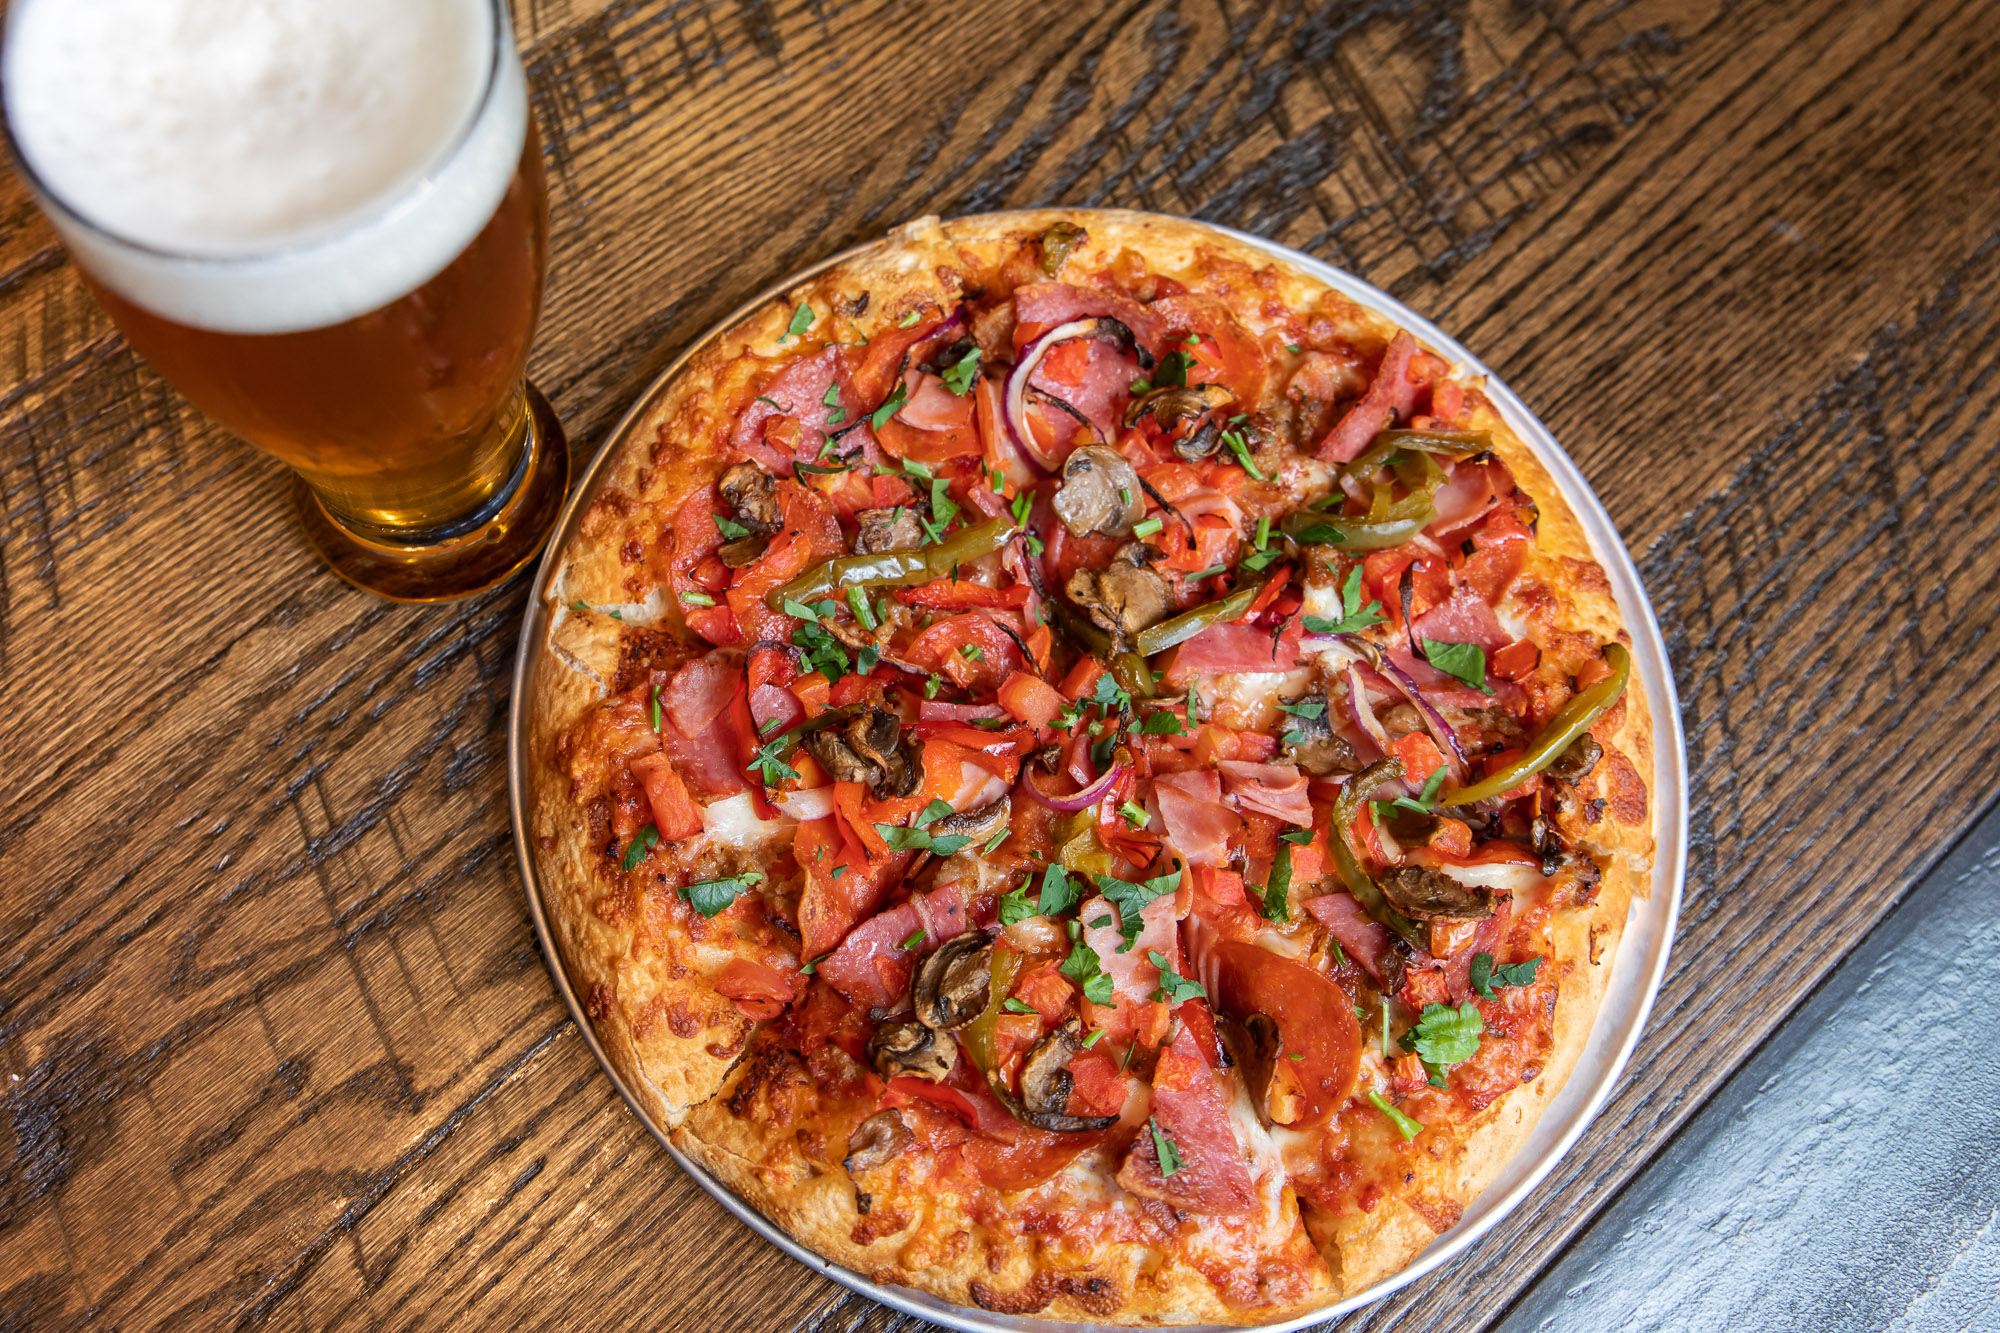 Flix Brewhouse pizza and beer on bar, Studio K10